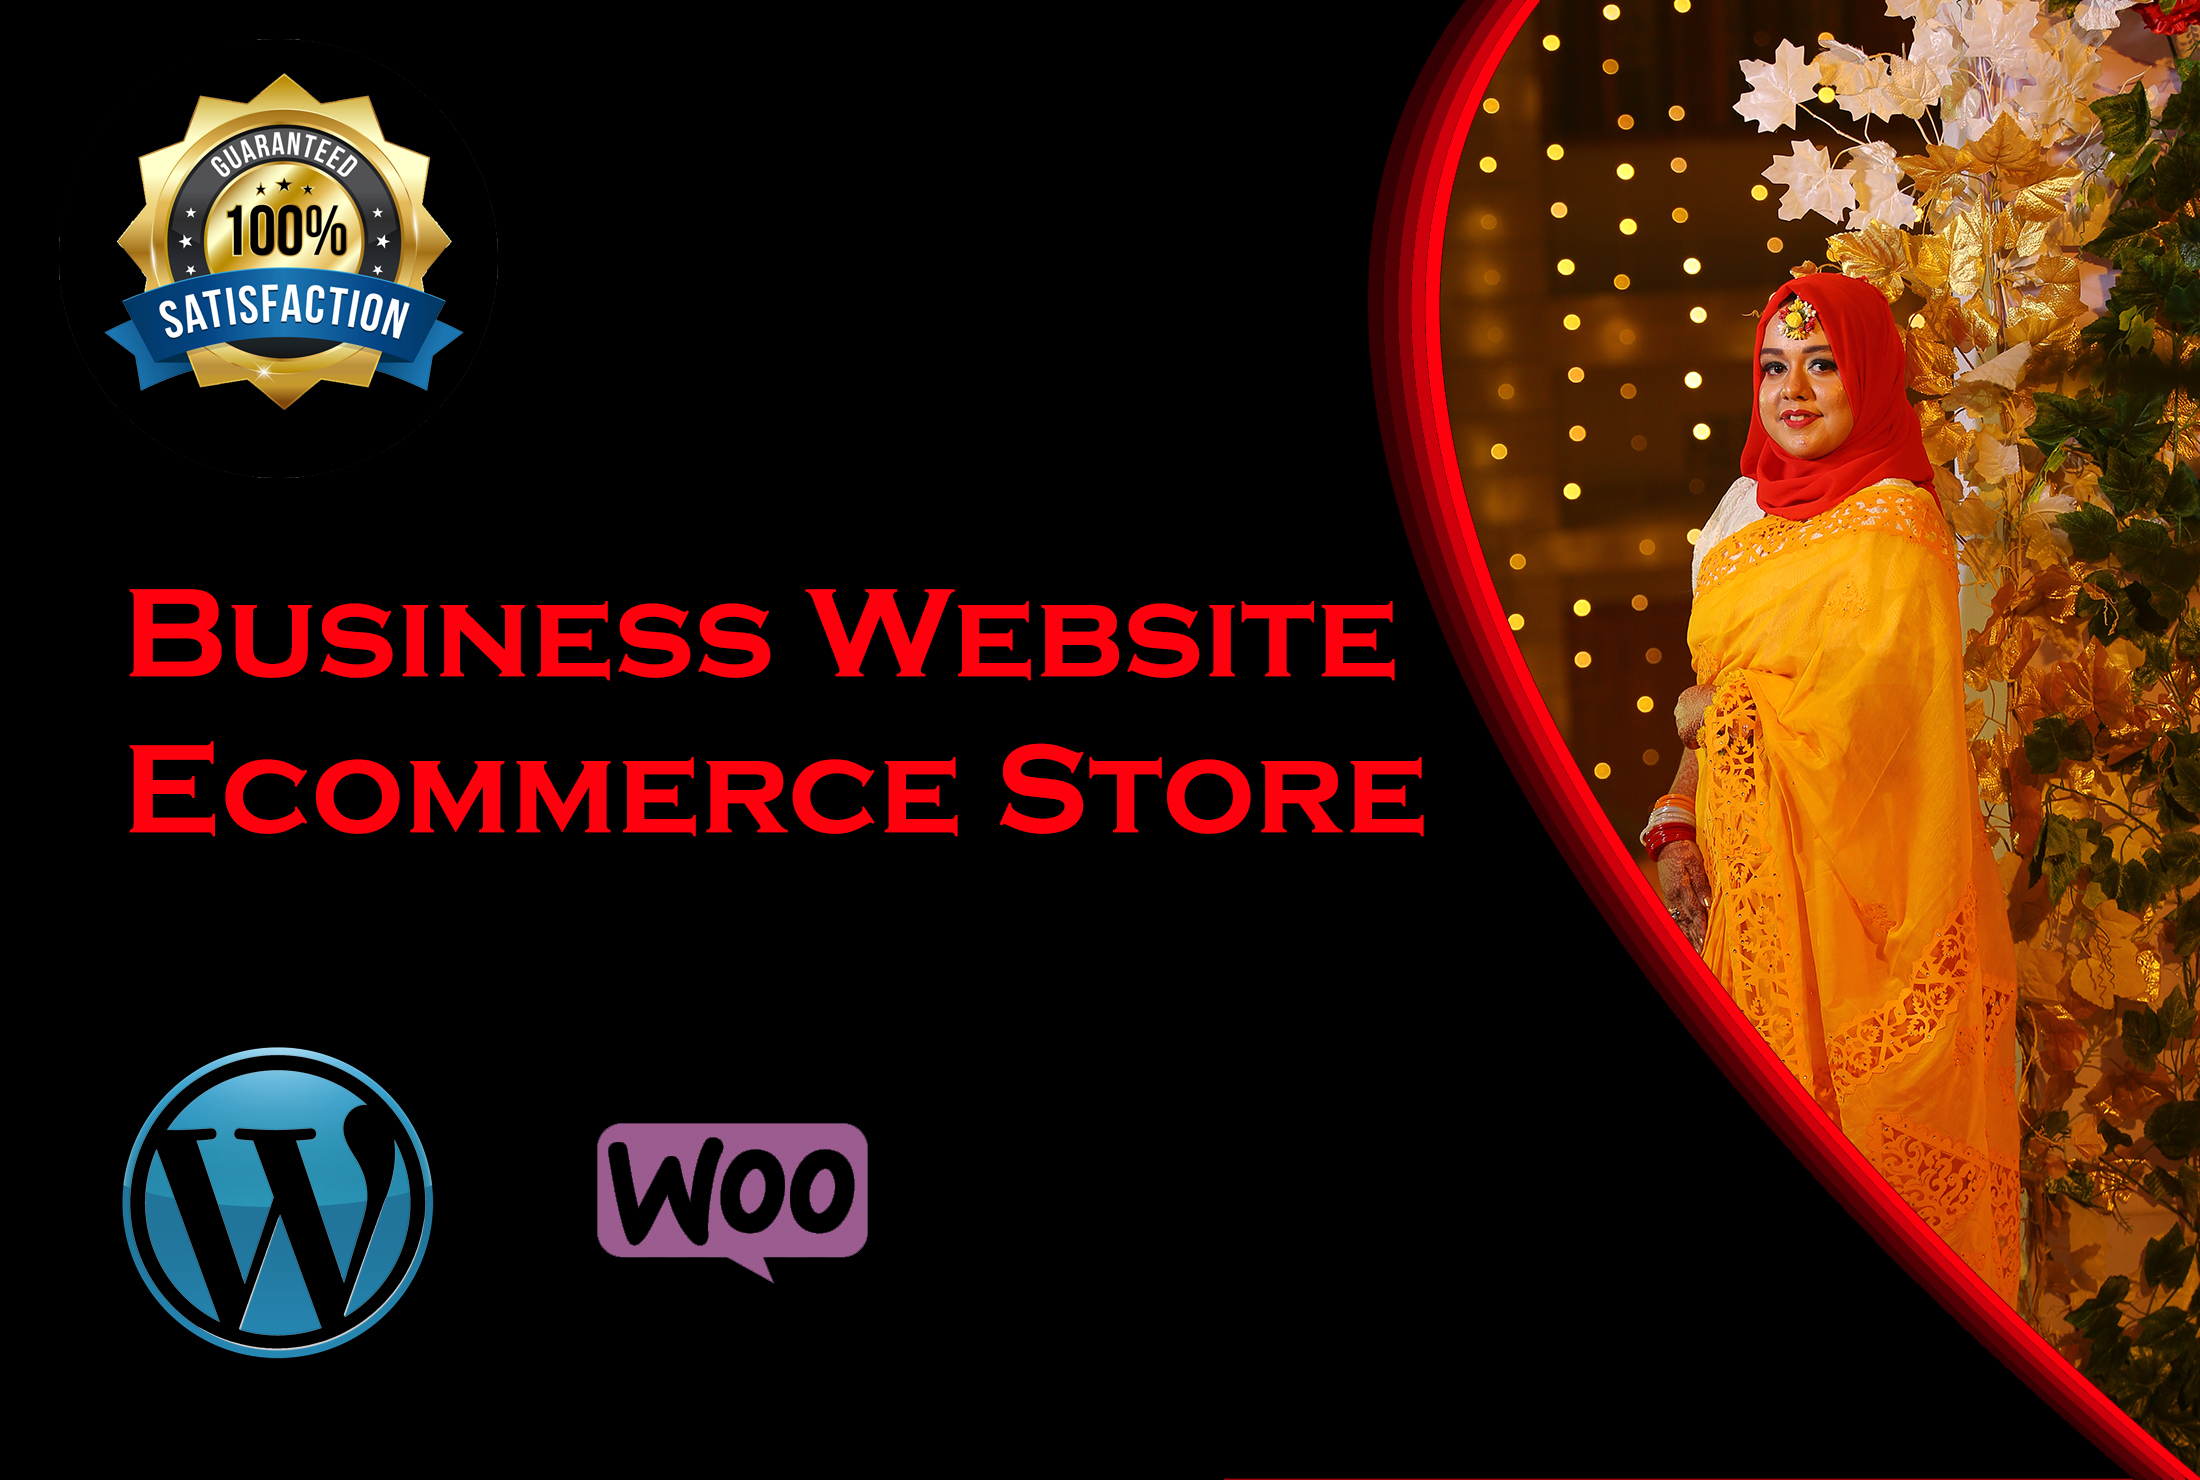 Create an ecommerce or marketplace or business website